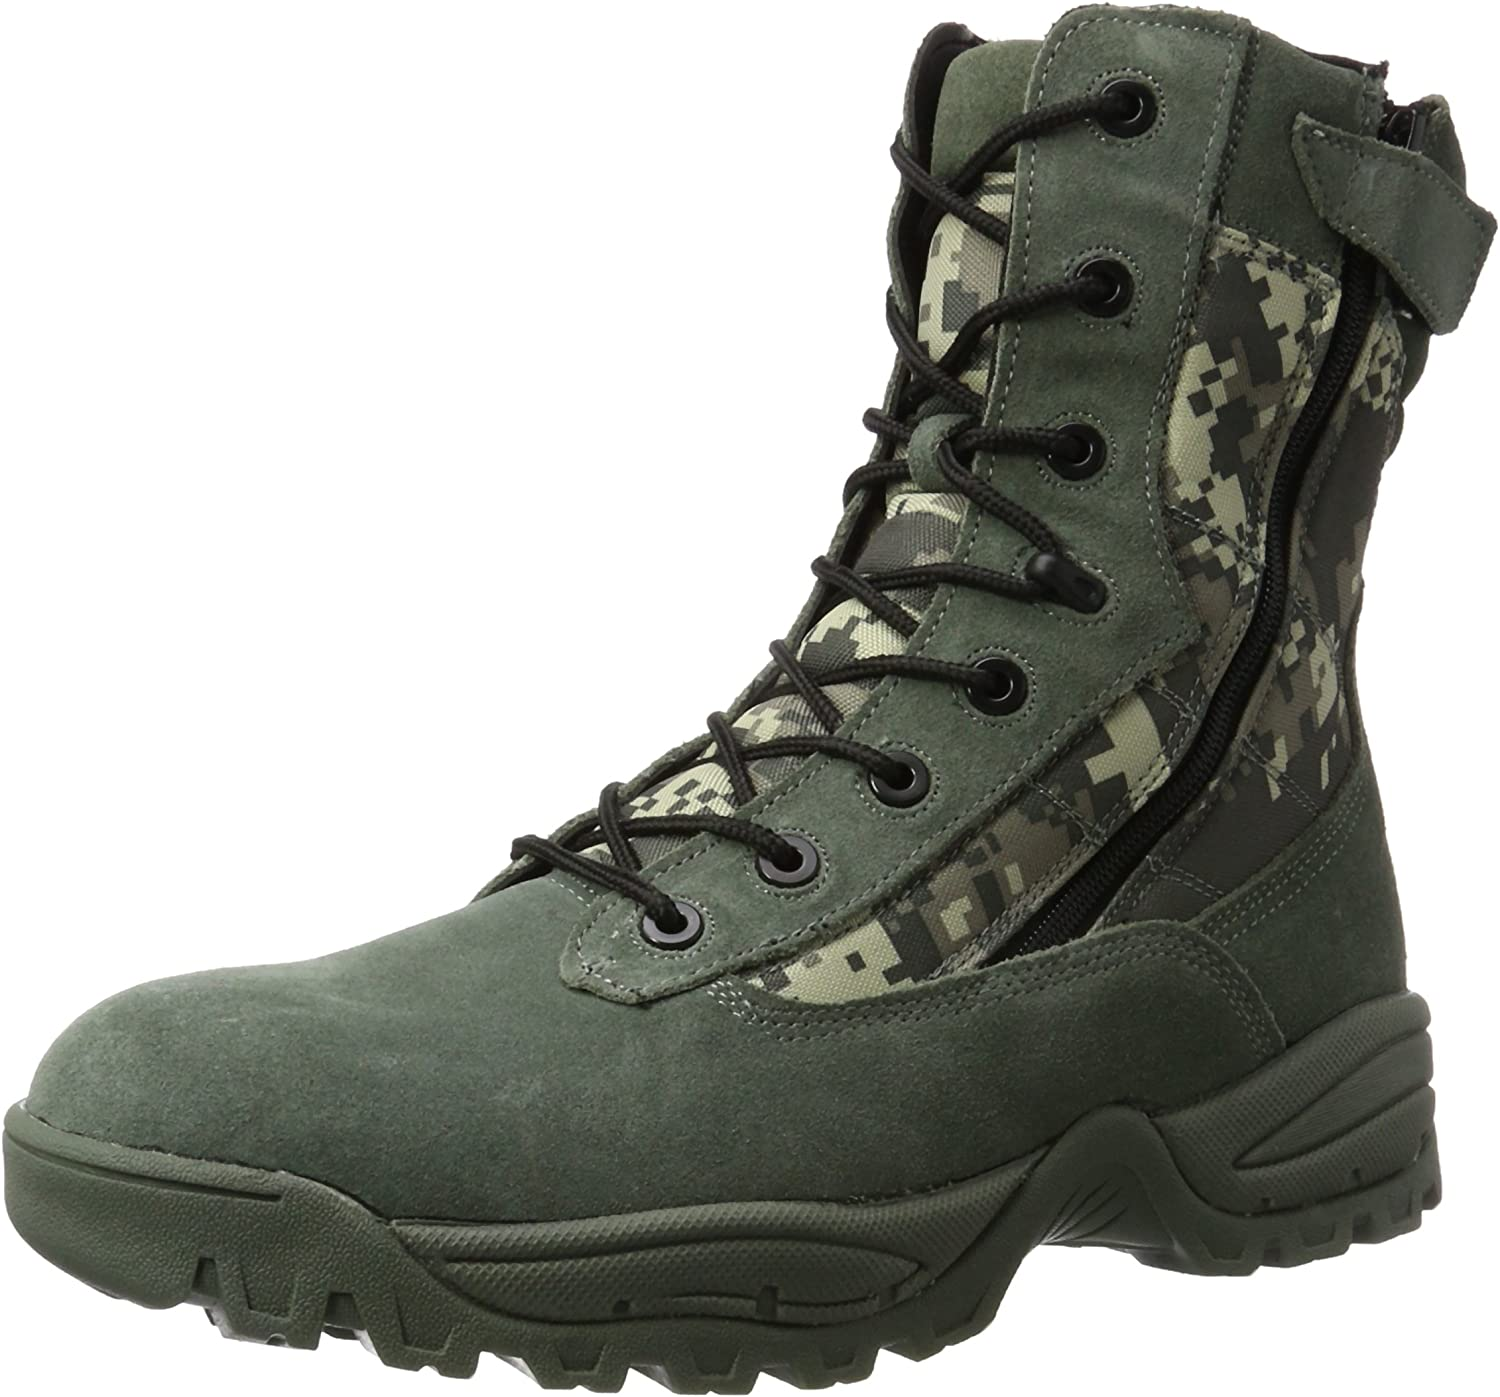 57303a20cd0 Mil-Tec Digital Camo Tactical Army Boots - 2 Zips nappox4425-New ...